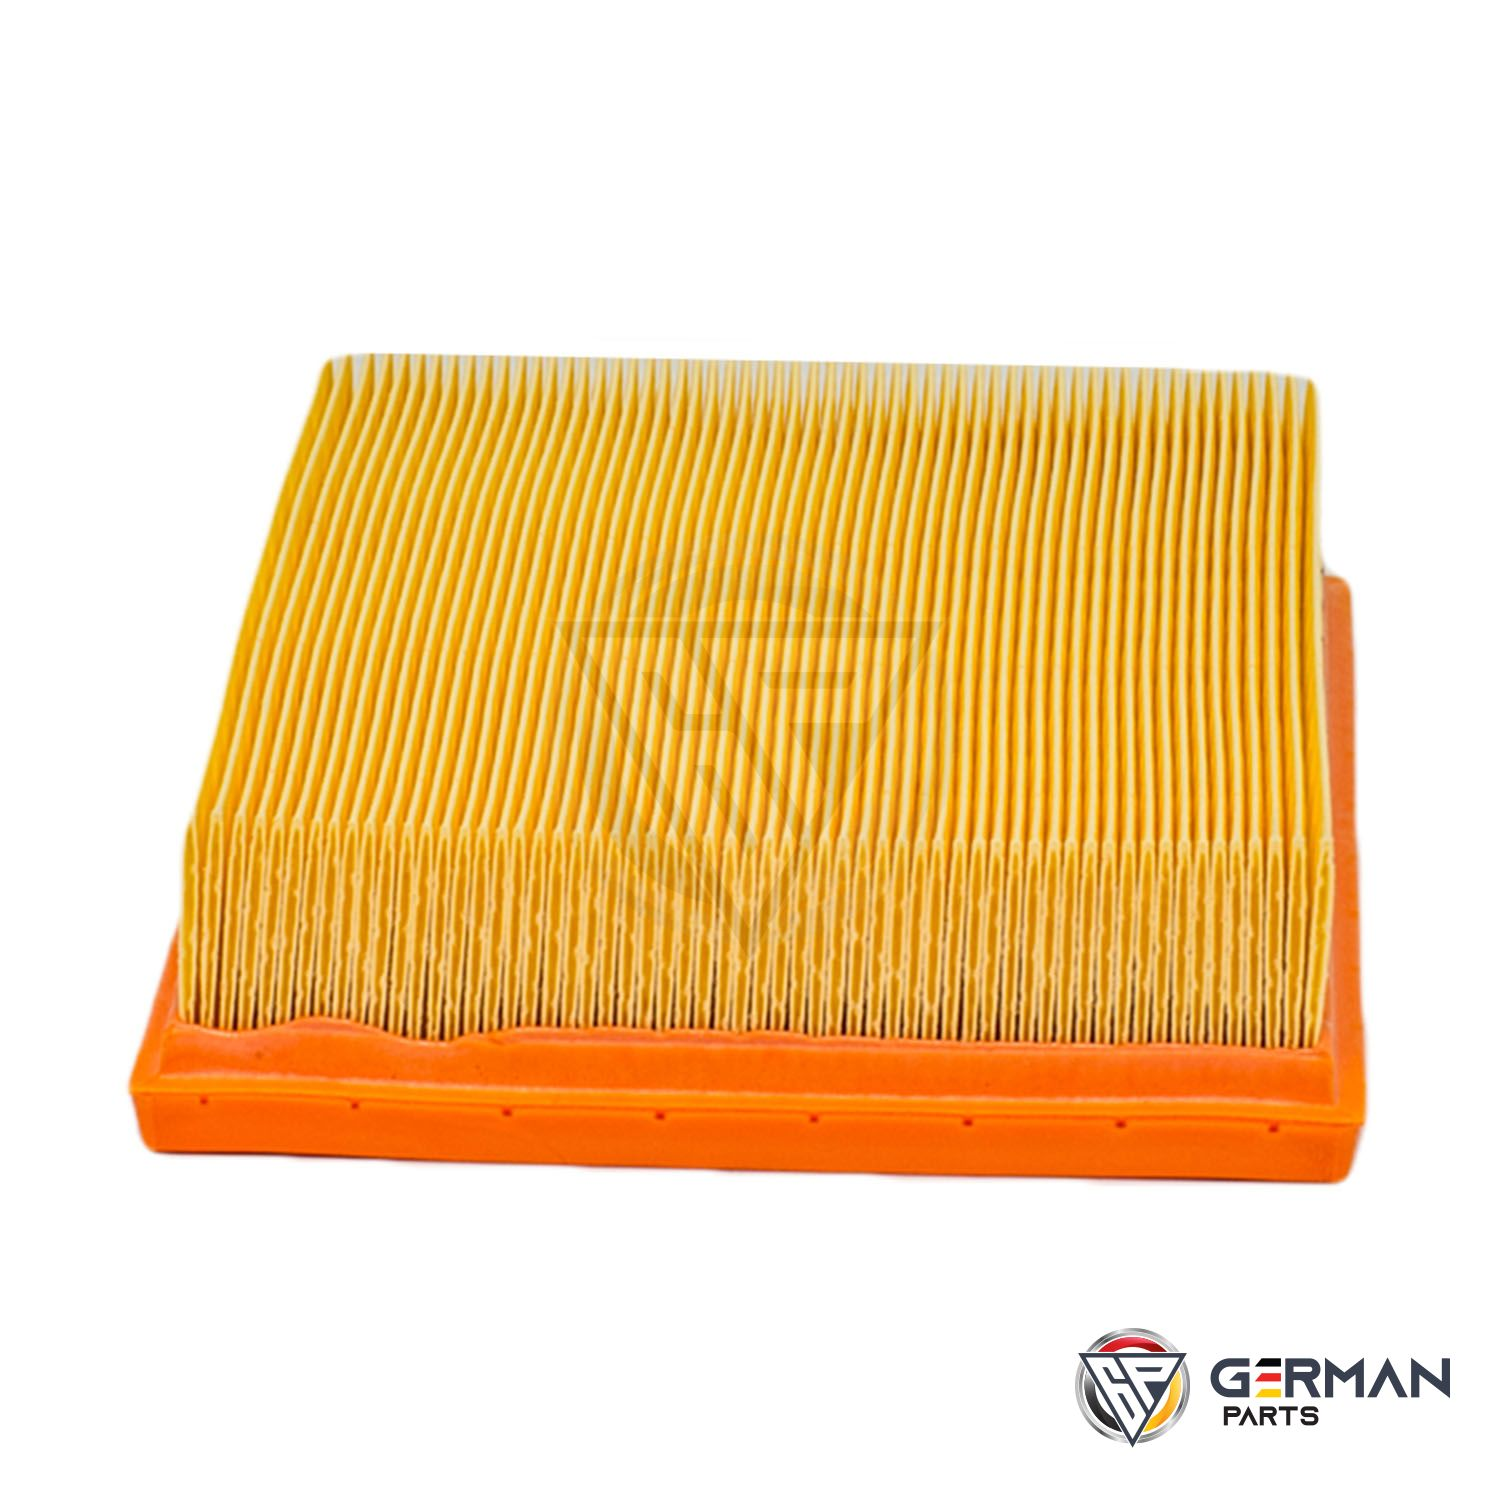 Buy Mercedes Benz Air Filter 2660940004 - German Parts